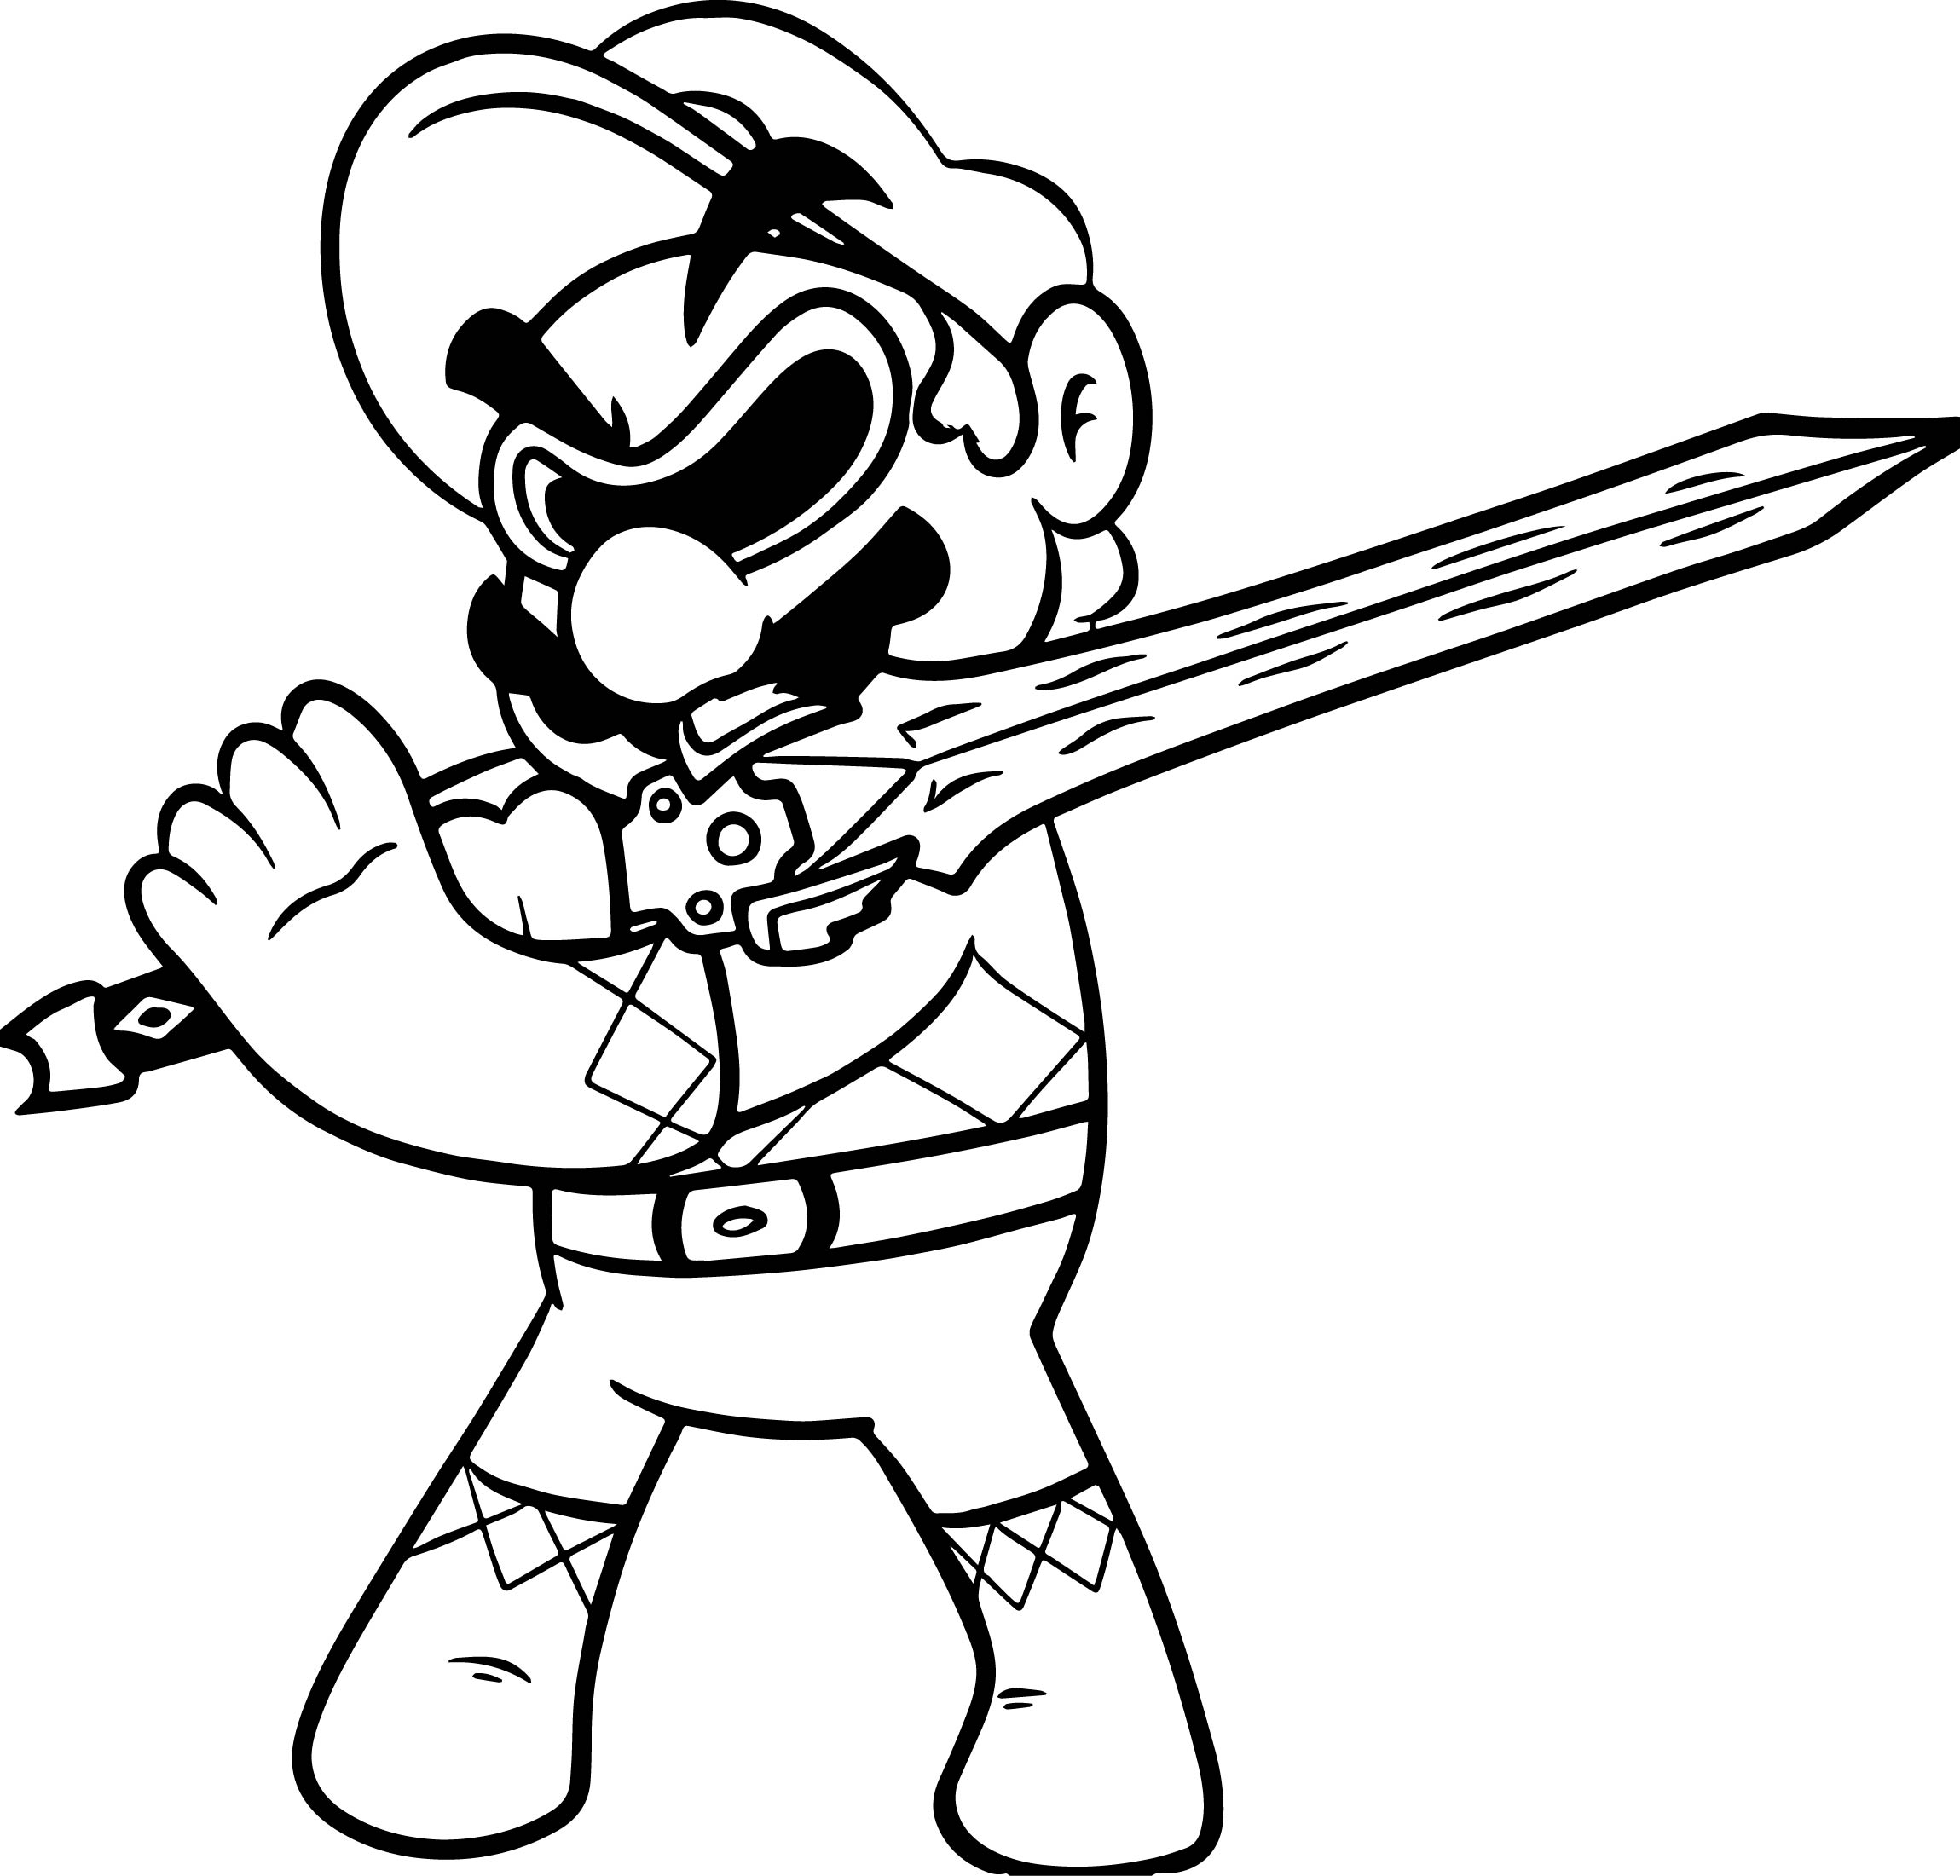 Power Ranger Super Mario Coloring